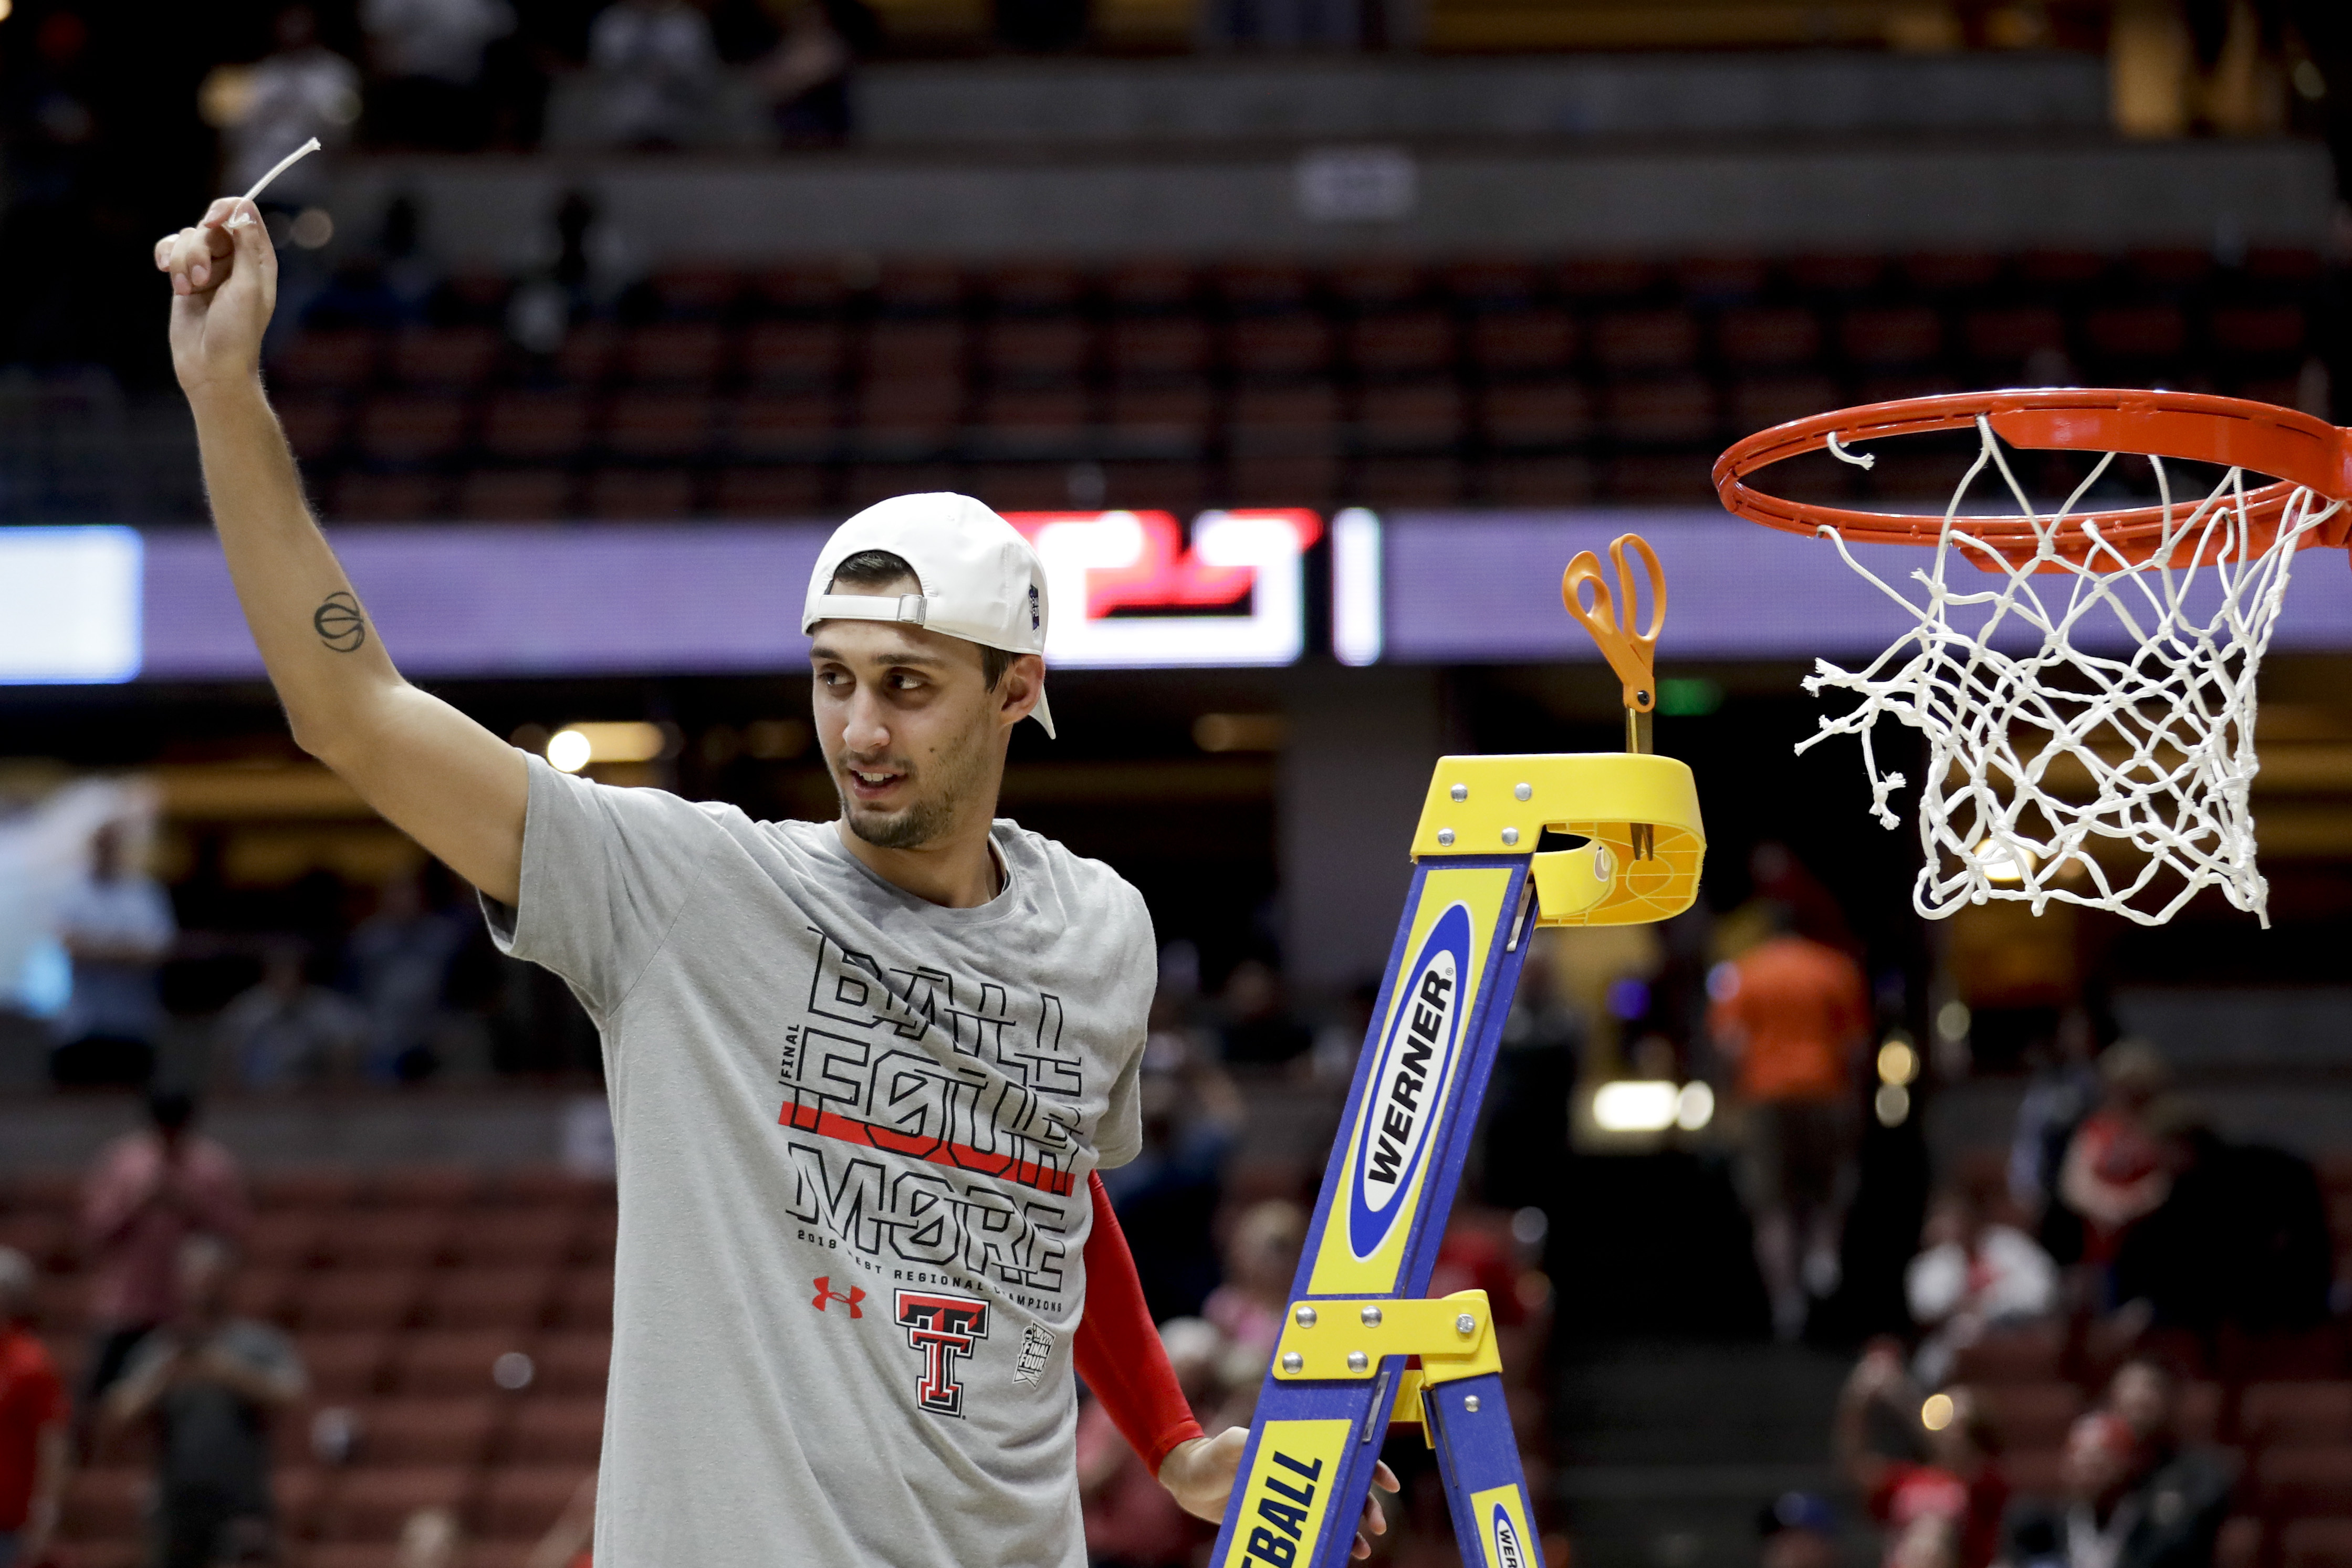 Buona notte for Moretti and Final Four-bound Texas Tech